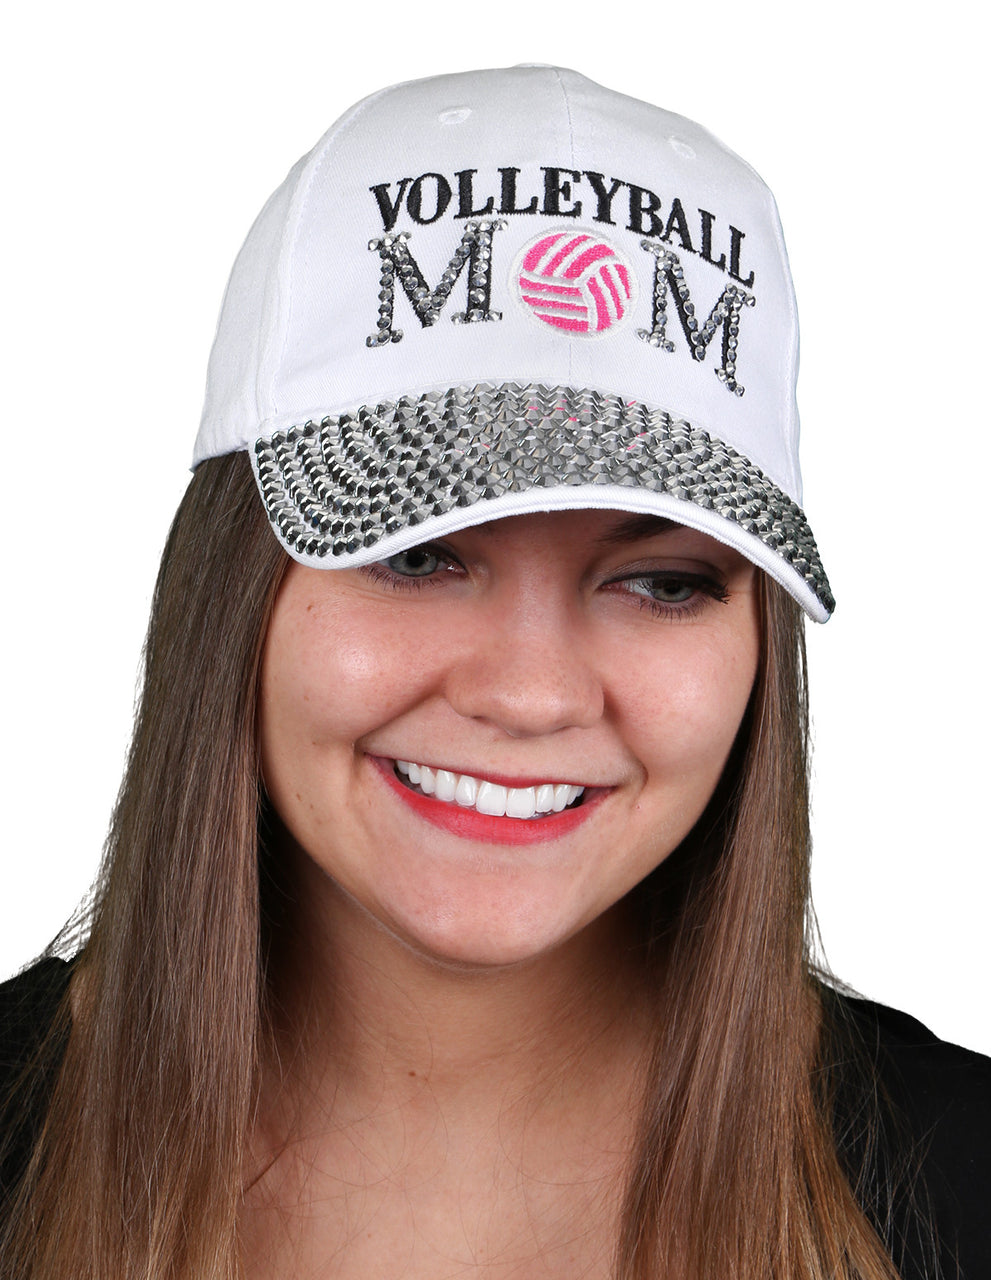 Funky Junque's Women's Silver Rhinestone Bill Sports Mom Bling Baseball Cap Hat - Volleyball White